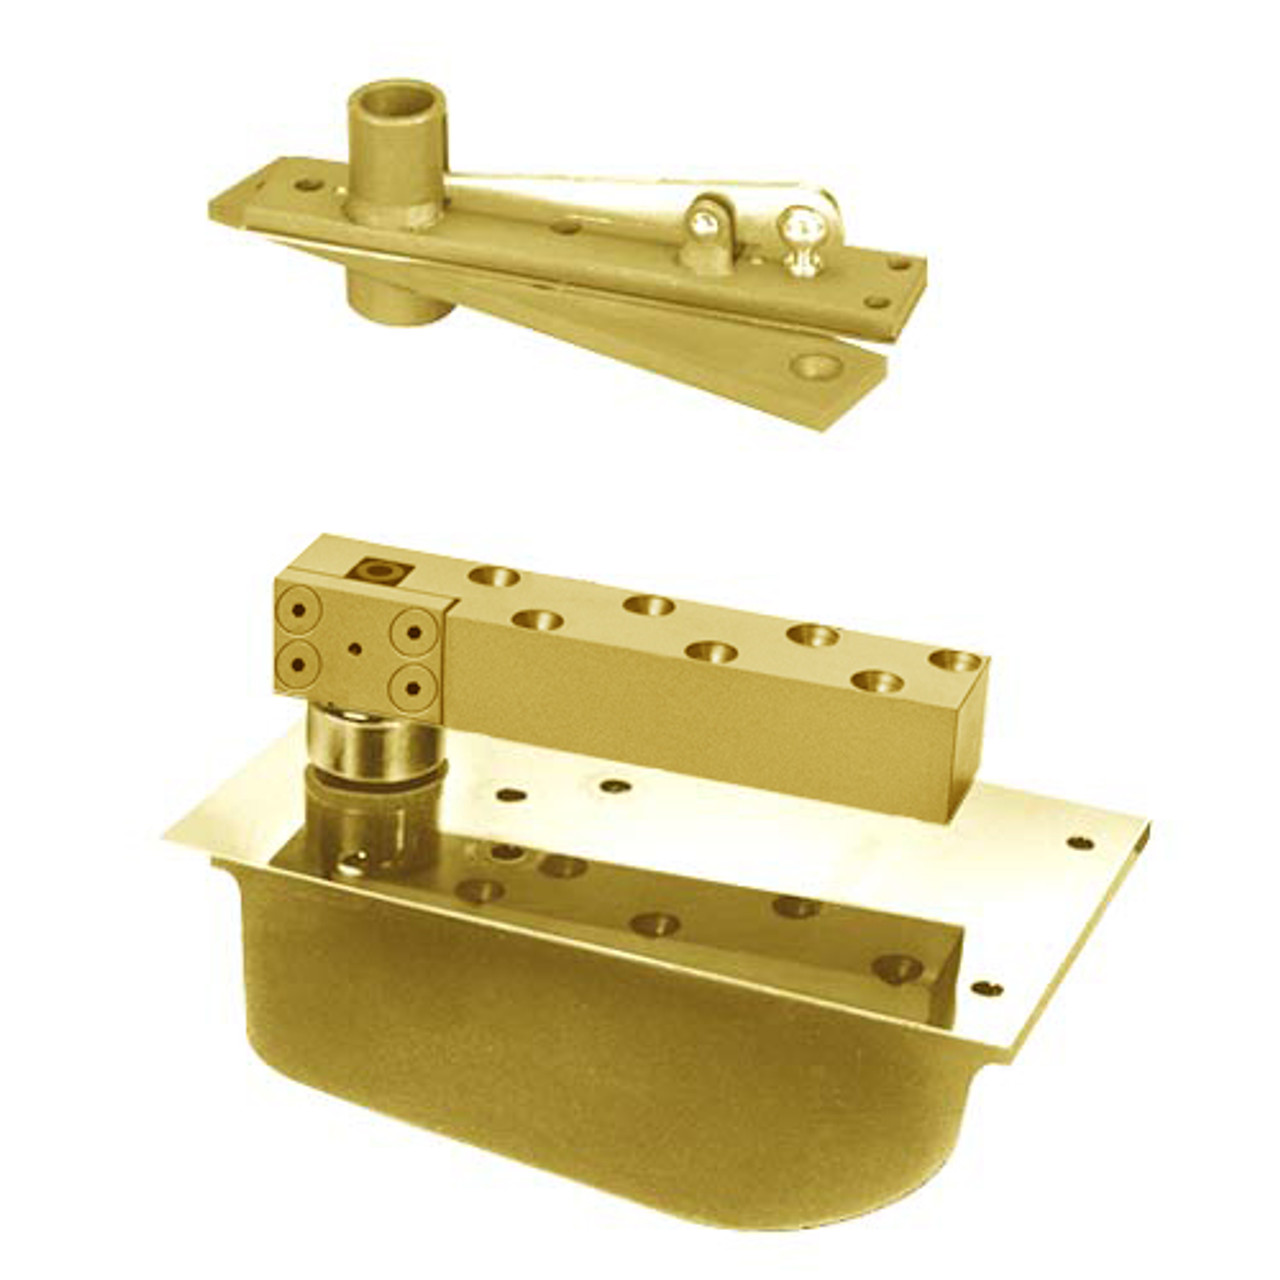 PHH28-95S-587-LH-606 Rixson 28 Series Extra Heavy Duty Single Acting Center Hung Concealed Floor Closer in Satin Brass Finish